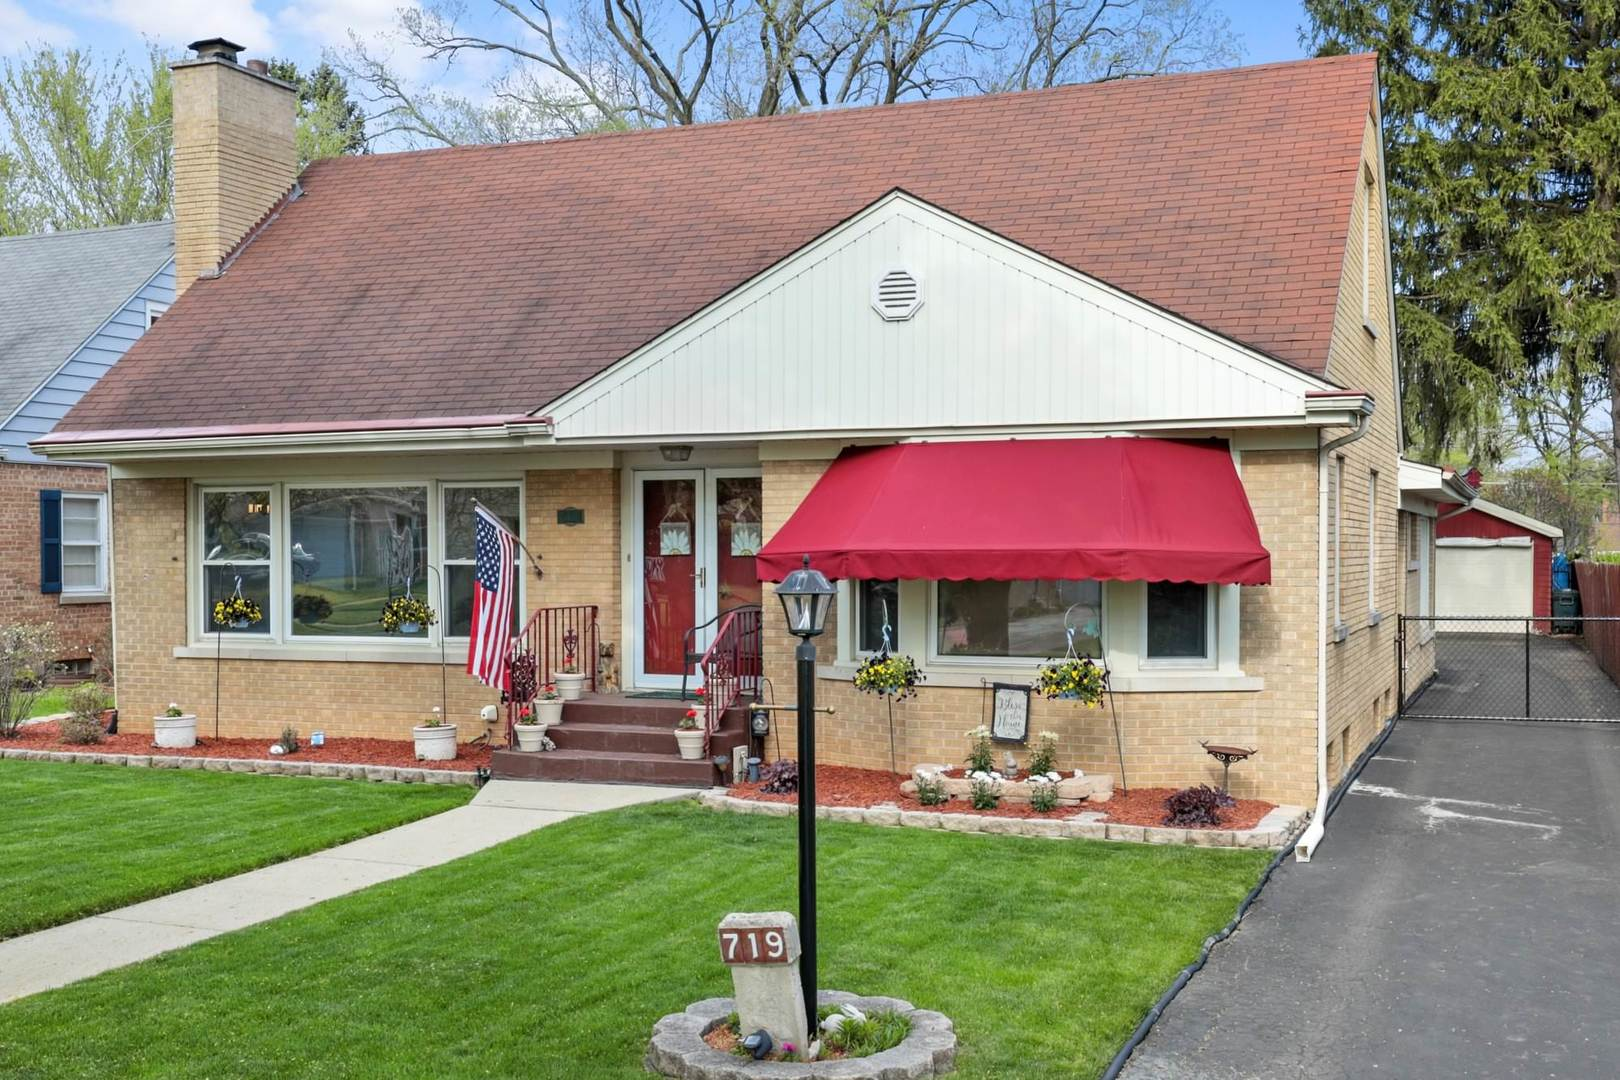 Money magazine has rated Villa Park as the 8th best town in the country to raise a family.  View this 5 bedroom 5 bath brick beauty located on a 300ft deep park-like lot and you will understand why. The main level features a gorgeous living room with gleaming hardwood and fireplace, expansive kitchen with island and combined eating area that opens to a massive family room with 2nd fireplace, 3 main level bedrooms, office, and 1st-floor laundry room. Rear main level bedroom and bath are perfect in-law set up. 2nd level has two large bedrooms with hardwood, full bath and tons of closet space. Ginormous finished basement with 2nd family room, shop area, stg/workout room , 2 more full baths and recreation room. Exterior entrance to the basement offers safety and convenience. Spectacular patio and built-in pool plus tons of rear yard space. See it to believe it!